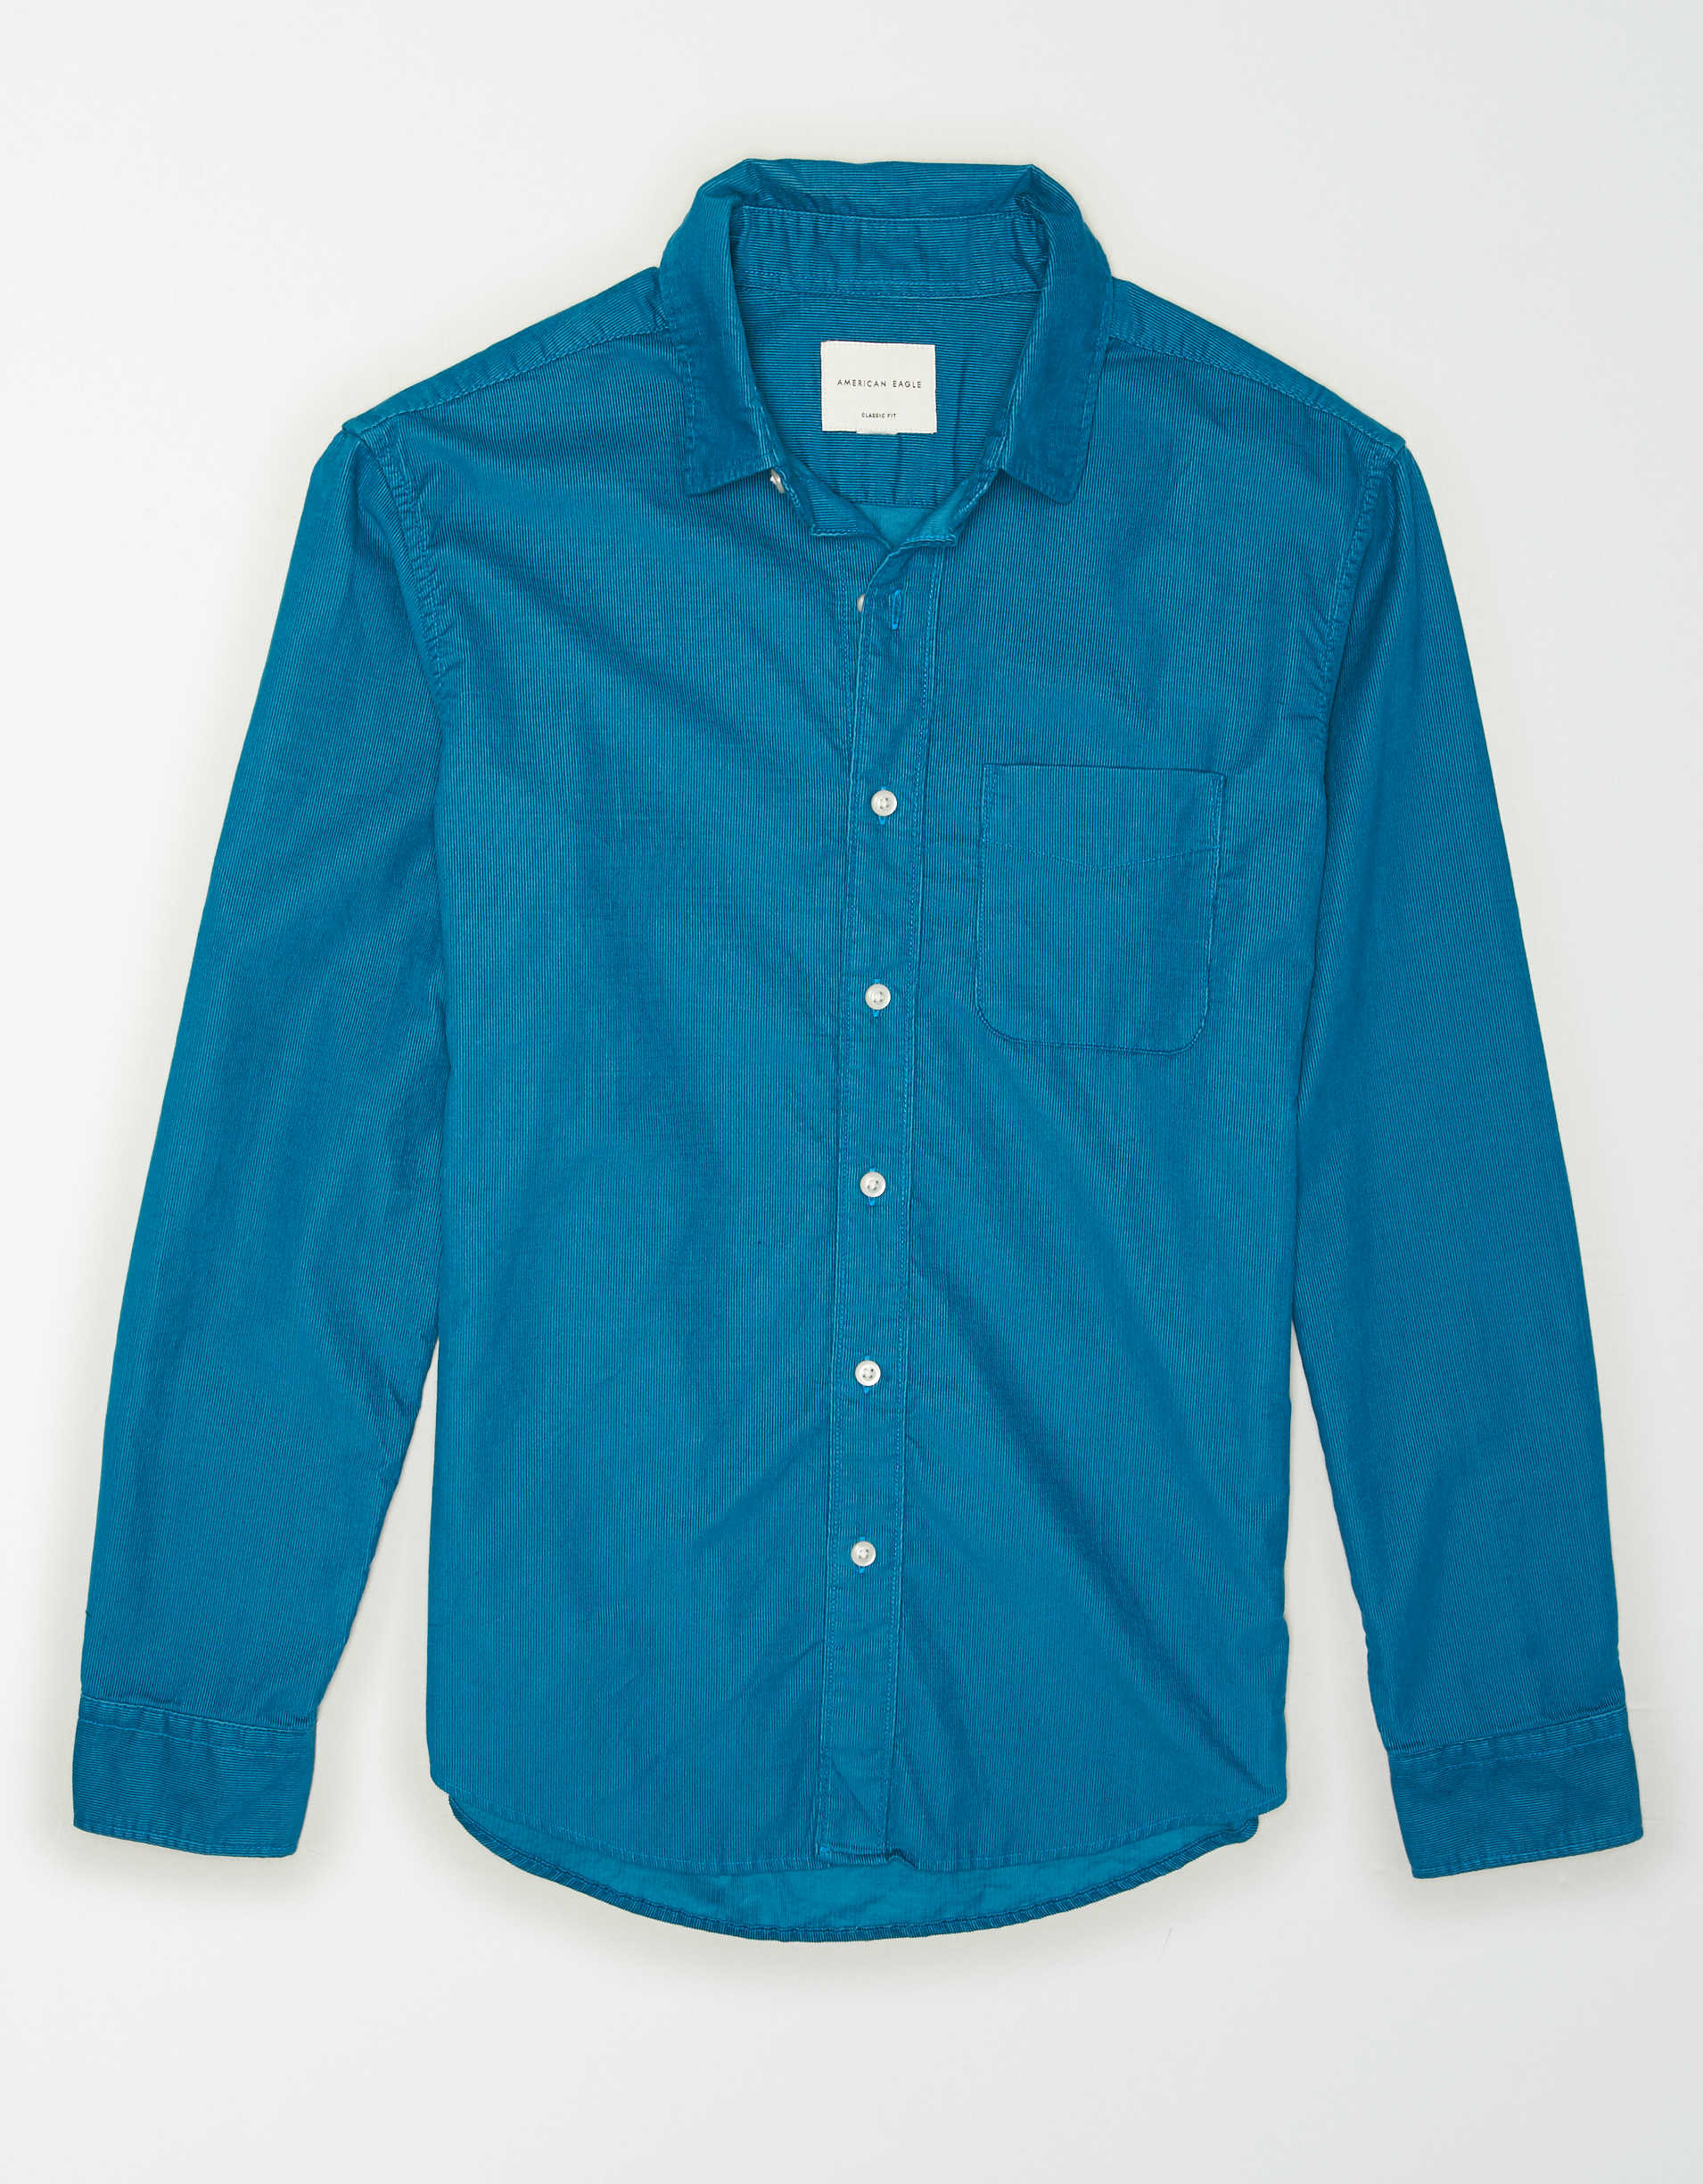 AE Corduroy Button Up Shirt